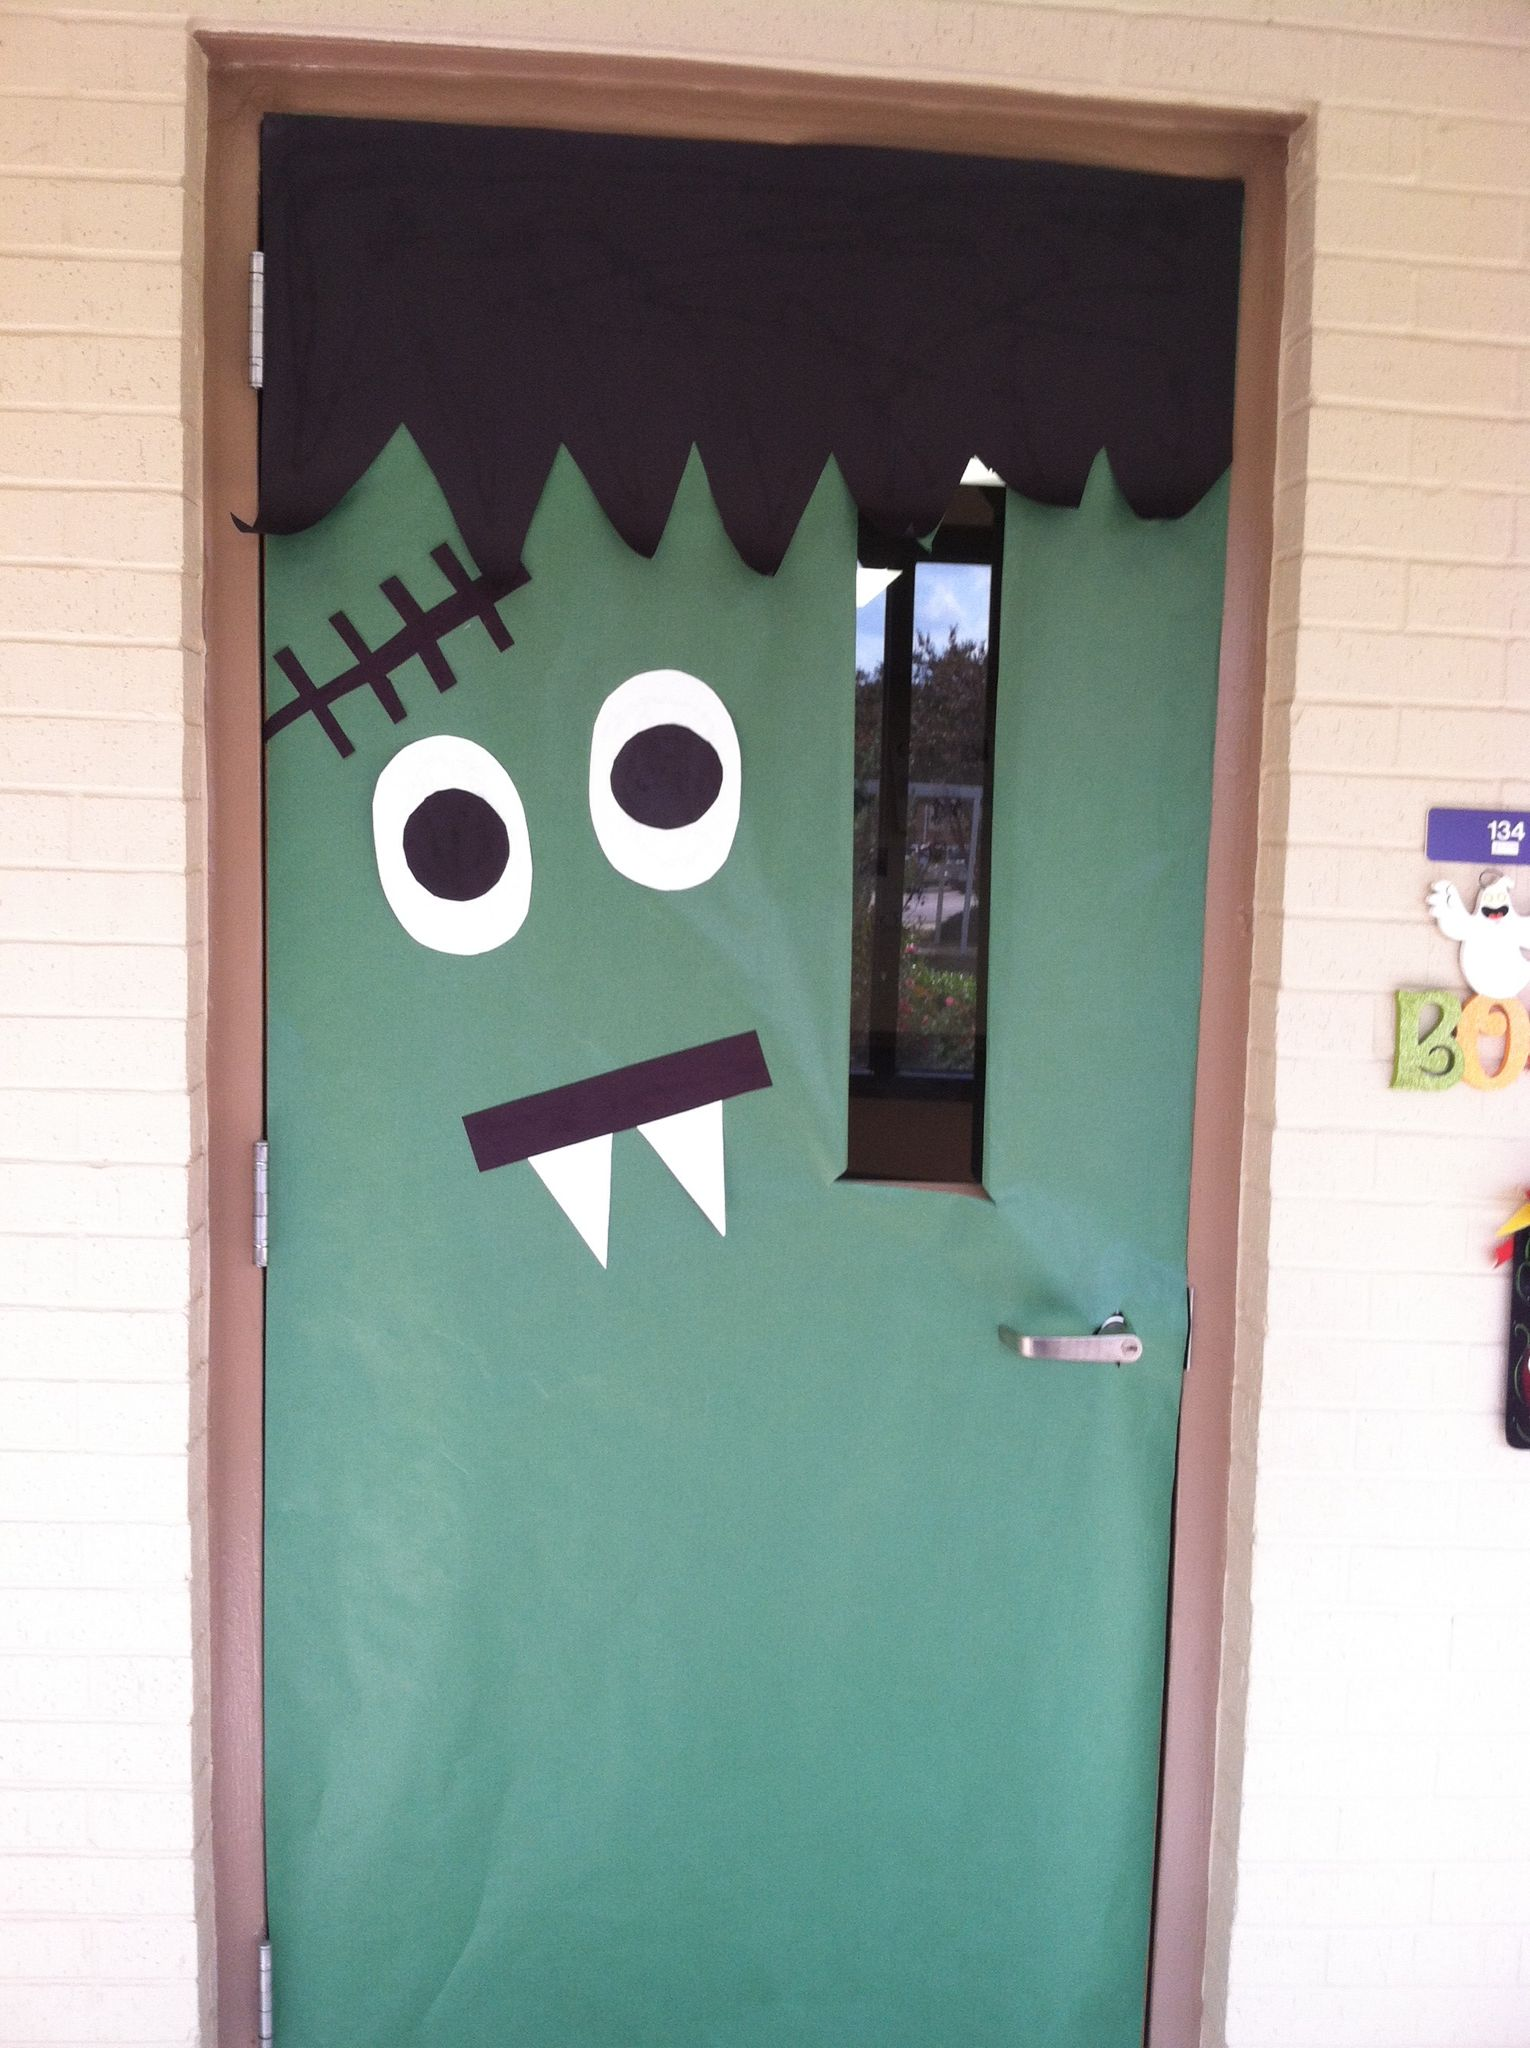 Frankenstein. Cover door in green. Two triangles attached to black rectangle for mouth. & Frankenstein. Cover door in green. Two triangles attached to black ... pezcame.com